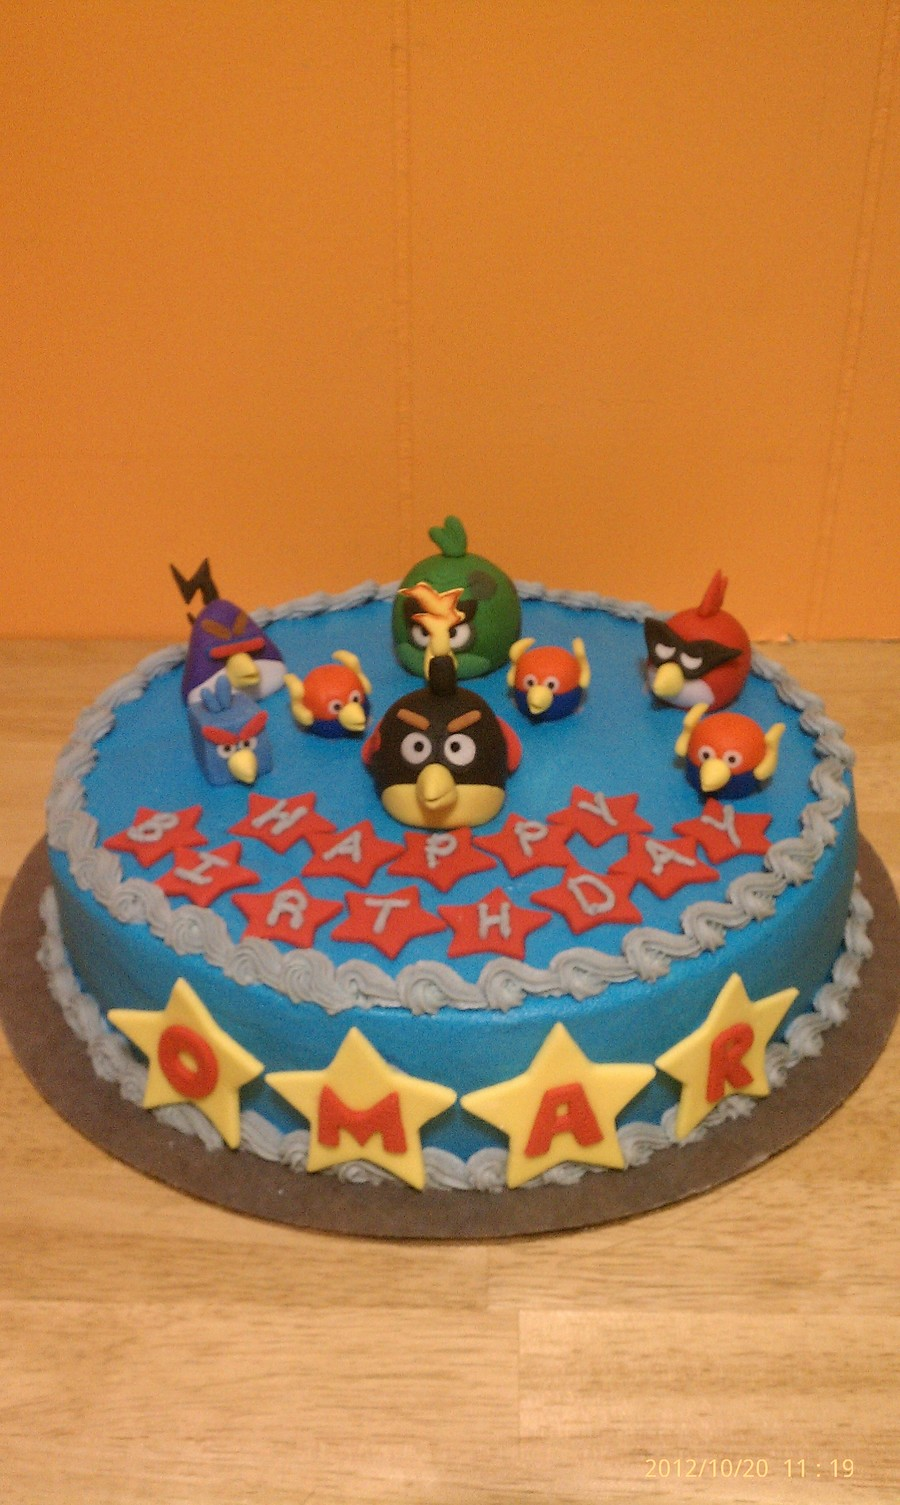 Angry Bird Cake Decorations Made Of Fondant And Cake Covered In Buttercream on Cake Central